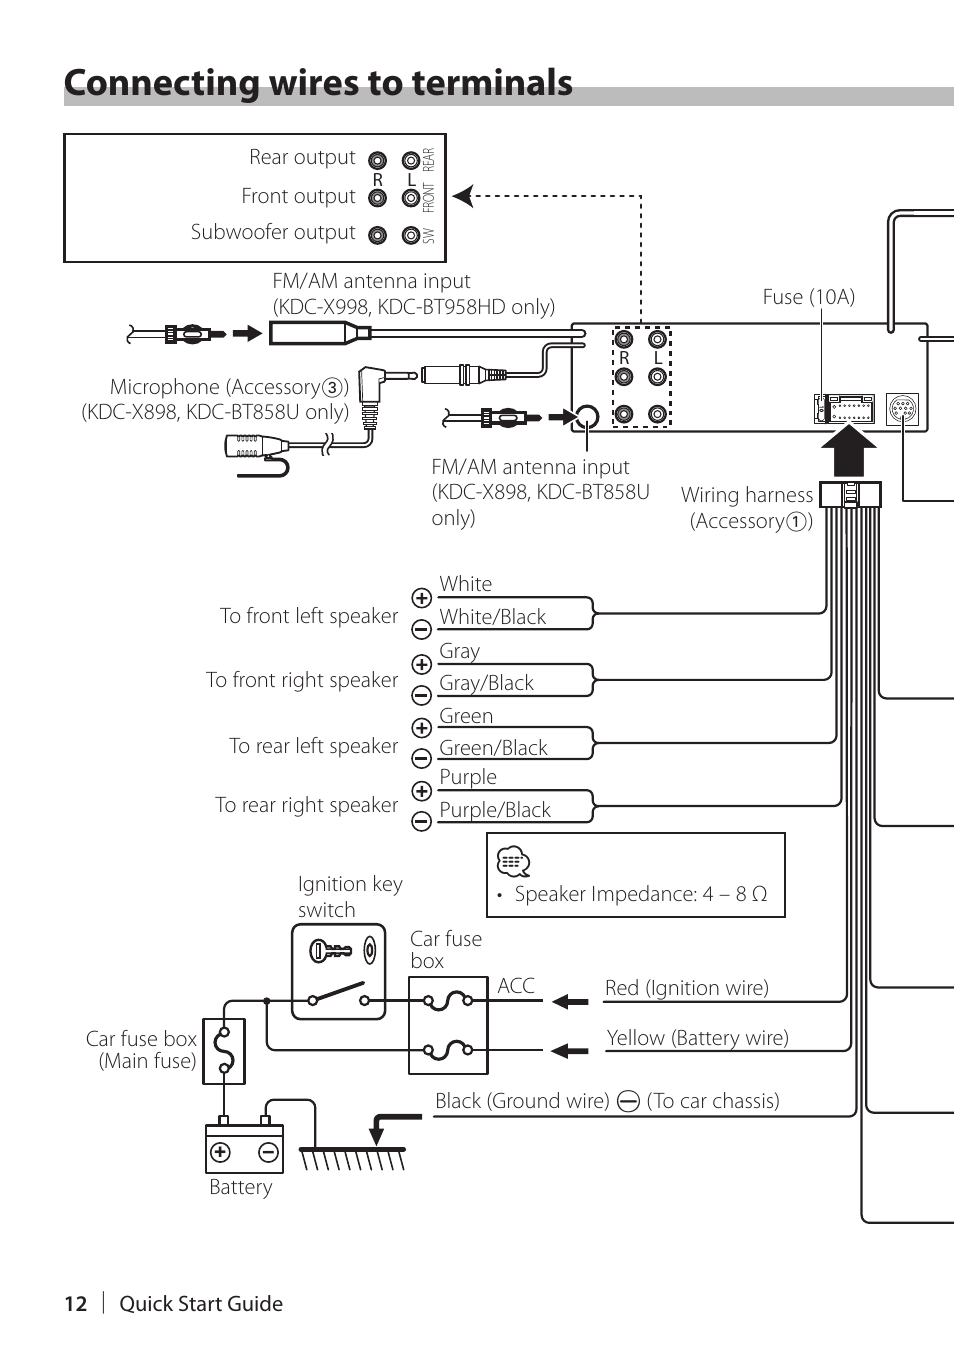 medium resolution of connecting wires to terminals kenwood kdc x898 user manual page schematic diagram connecting wires to terminals